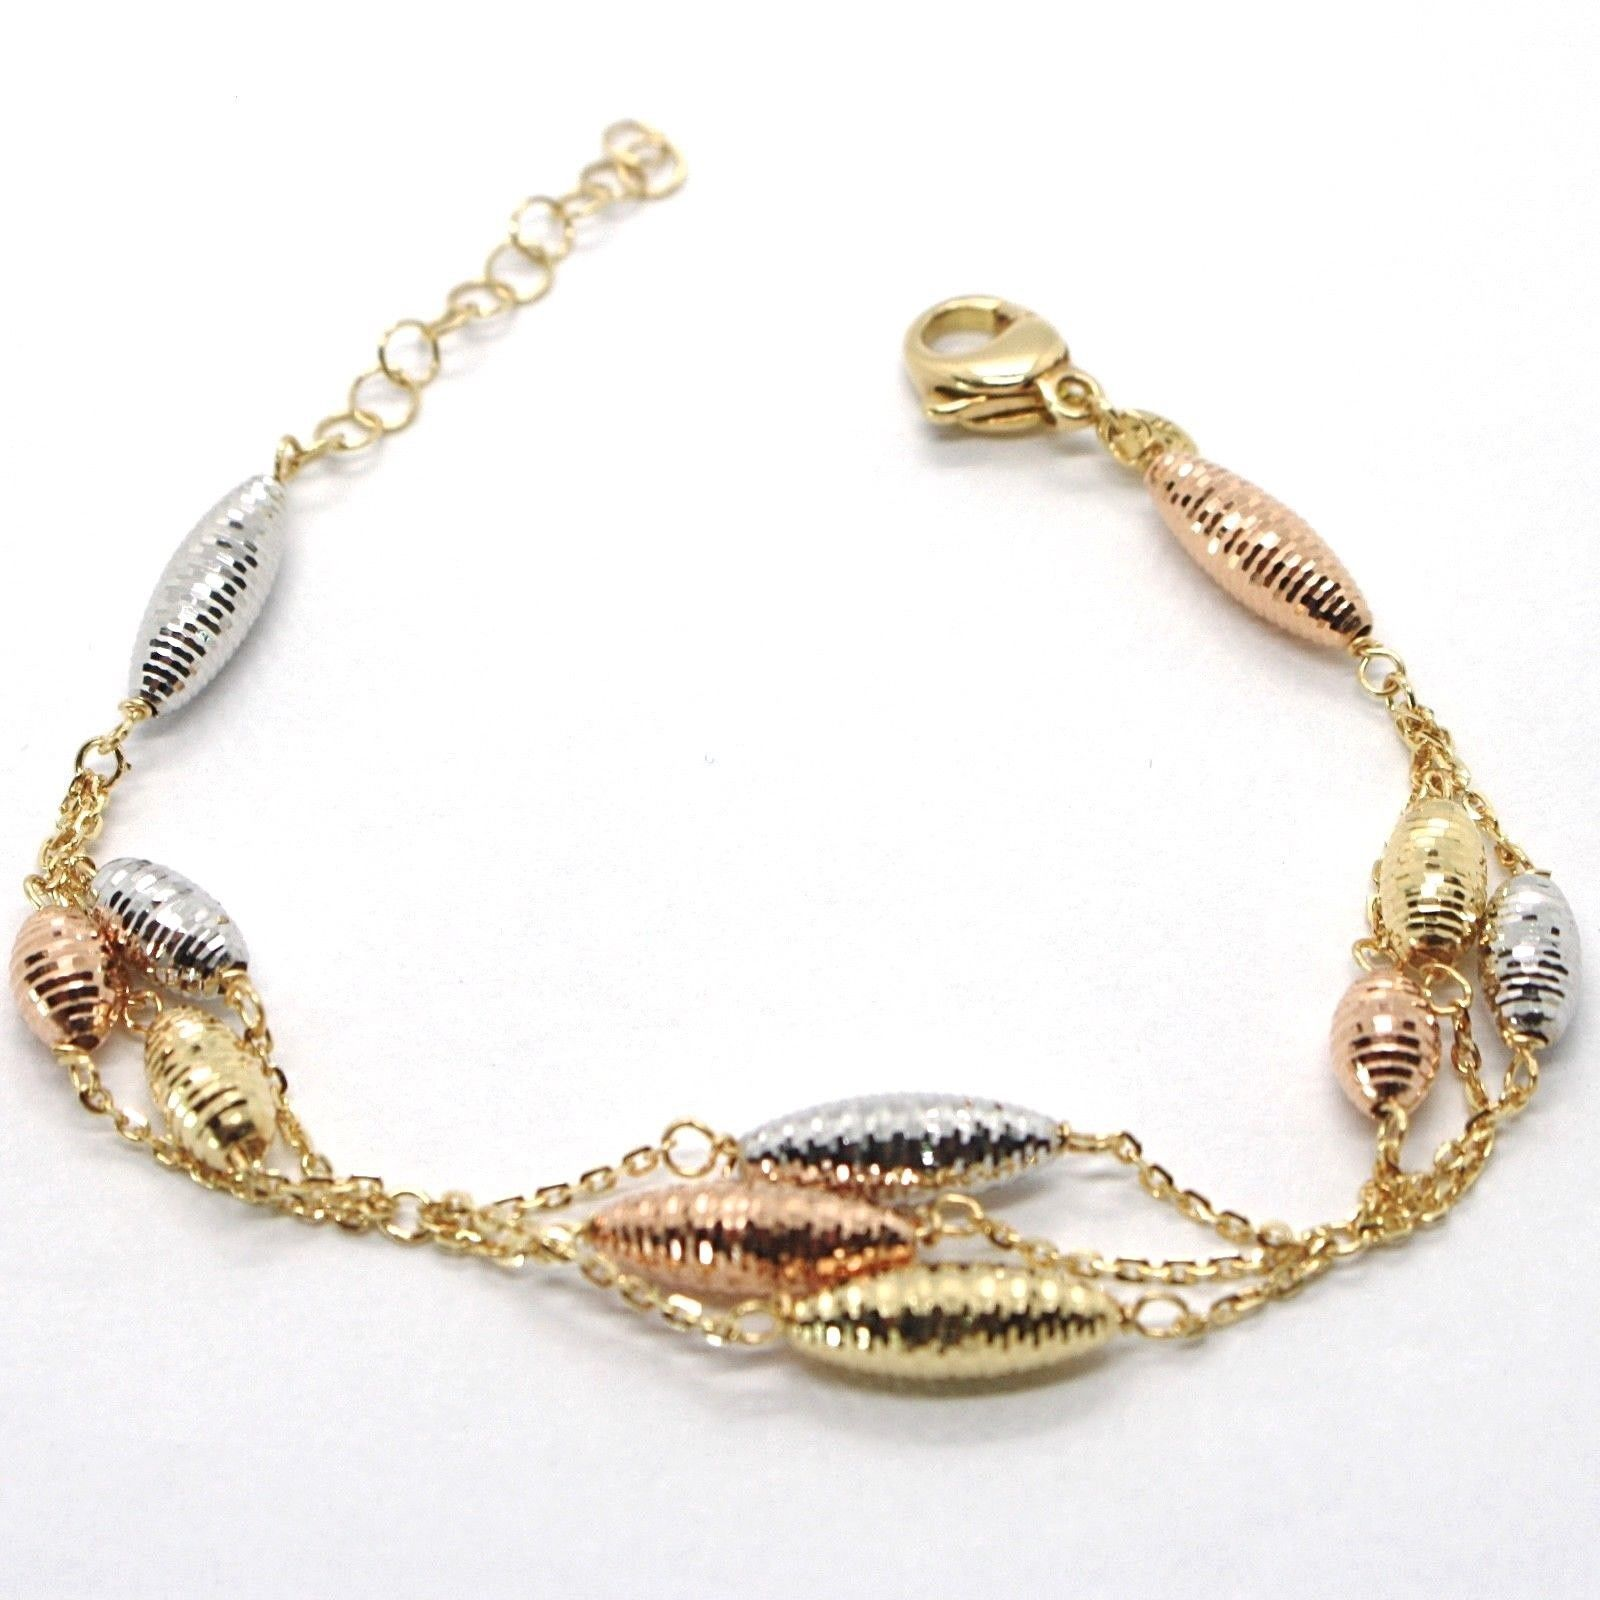 Bracelet Yellow Gold Pink White 18k 750, Triples Inserted Ovals Worked